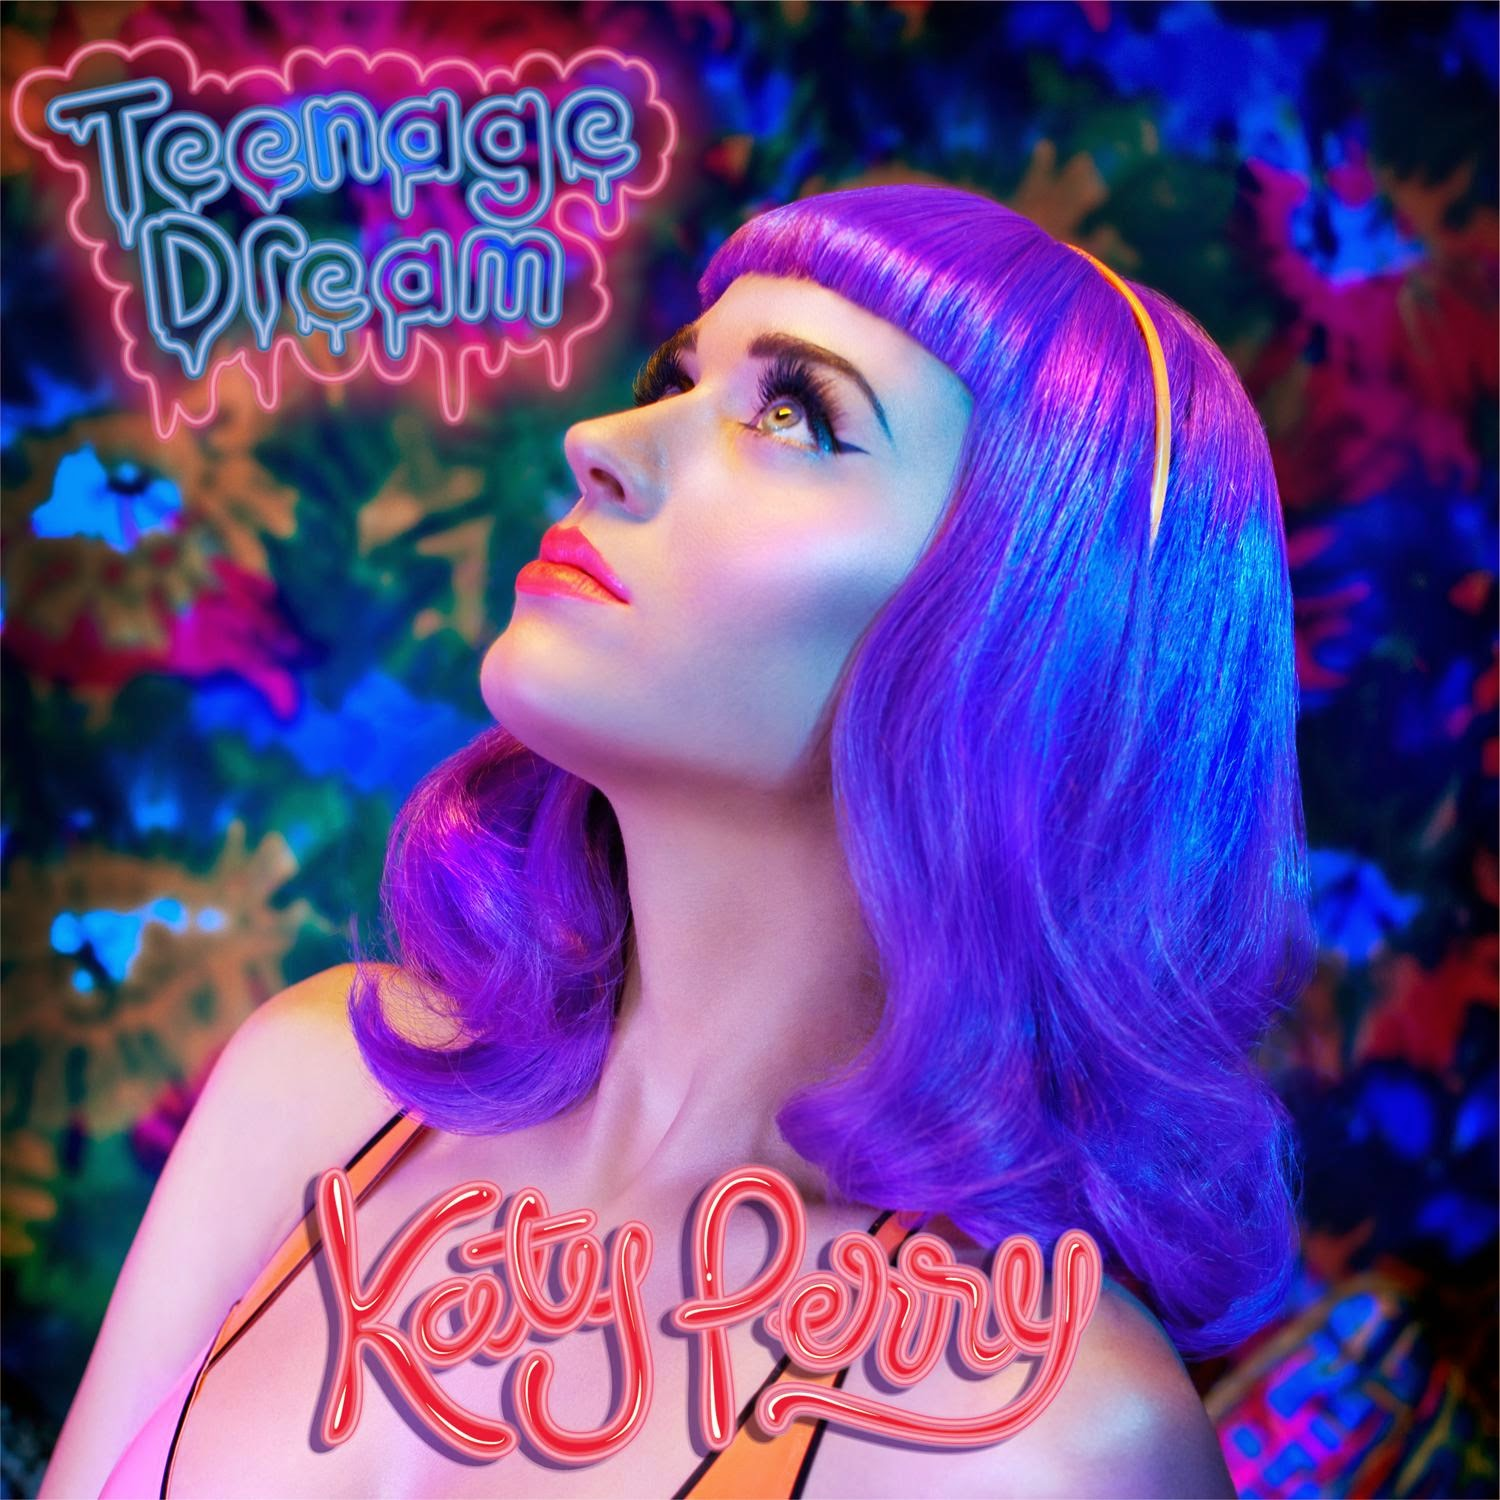 new songs: katy perry new songs list